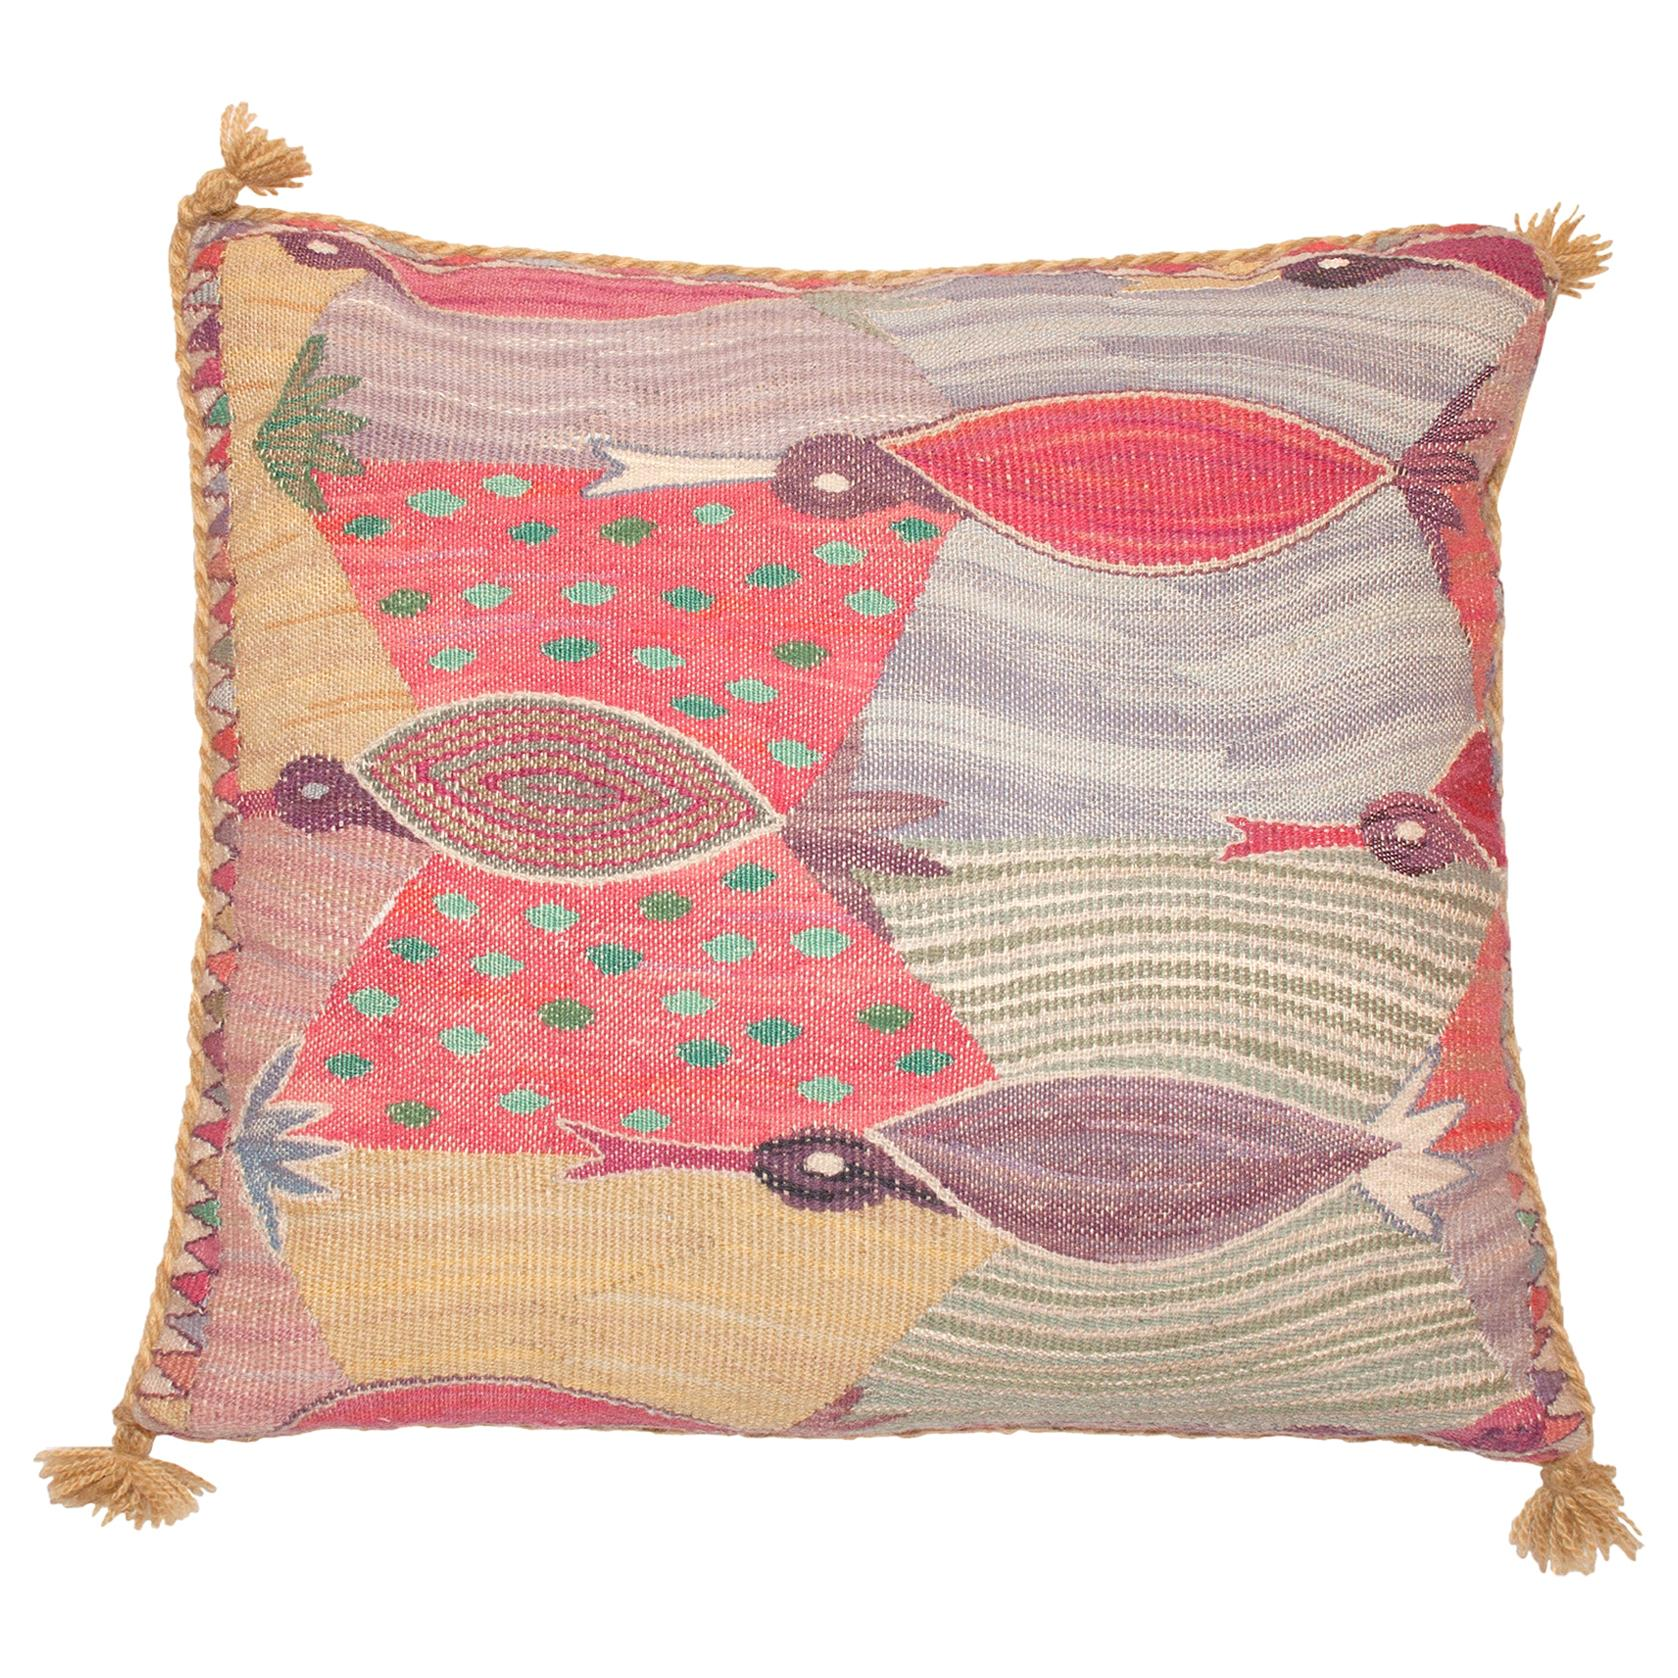 Mid-20th Century Swedish, Pillow by Marianne Richter